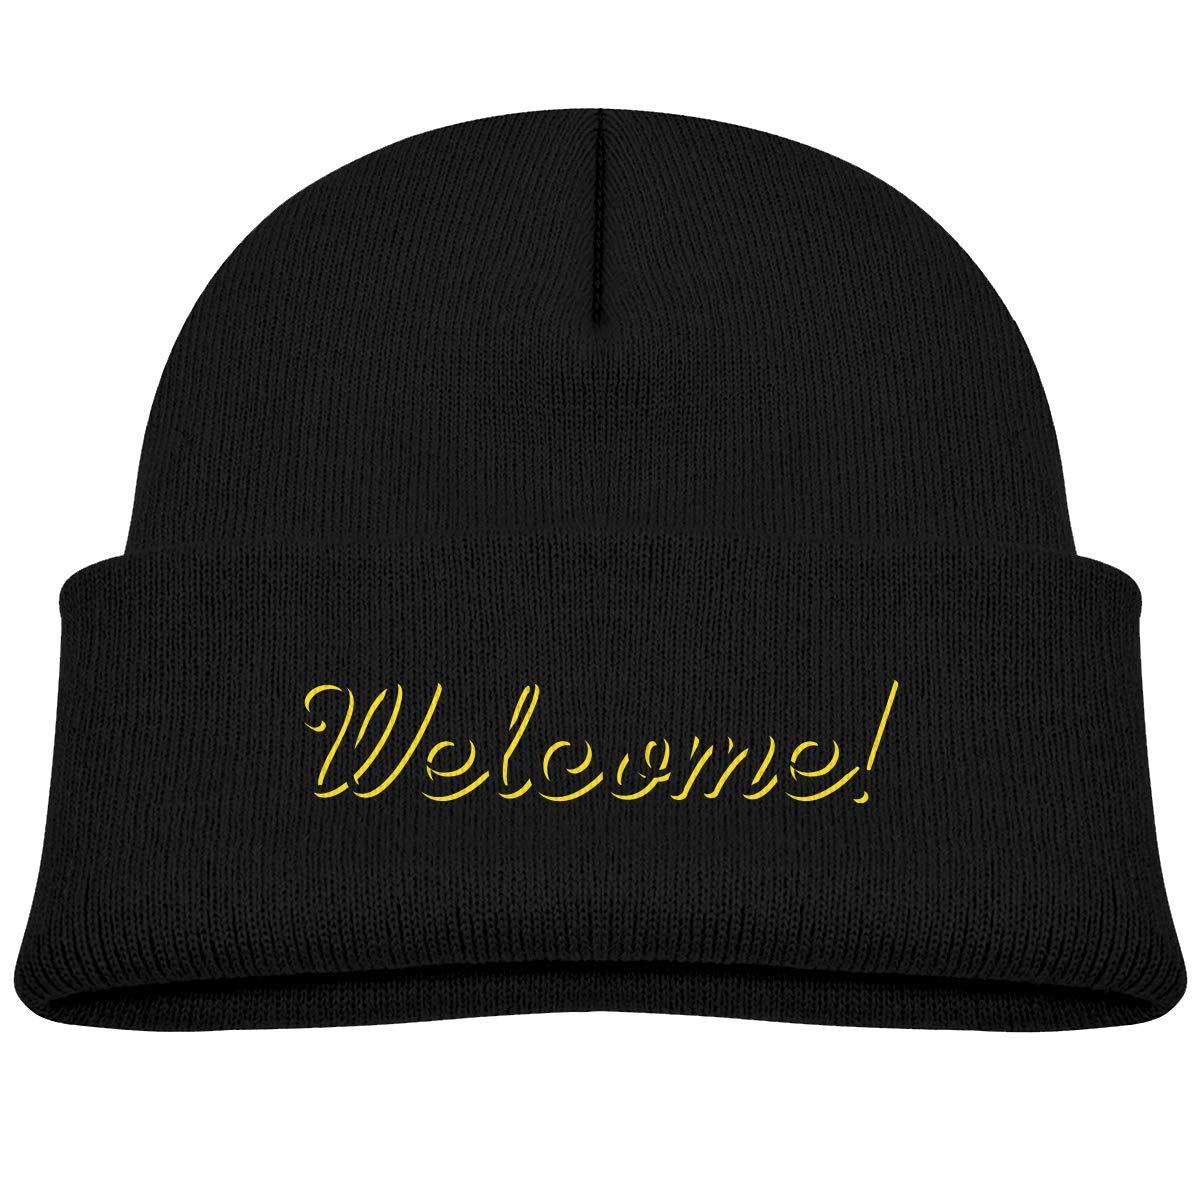 Amazon.com  Kids Knitted Beanies Hat Awesome Welcome Winter Hat Knitted  Skull Cap for Boys Girls Black  Clothing 0aac3d460